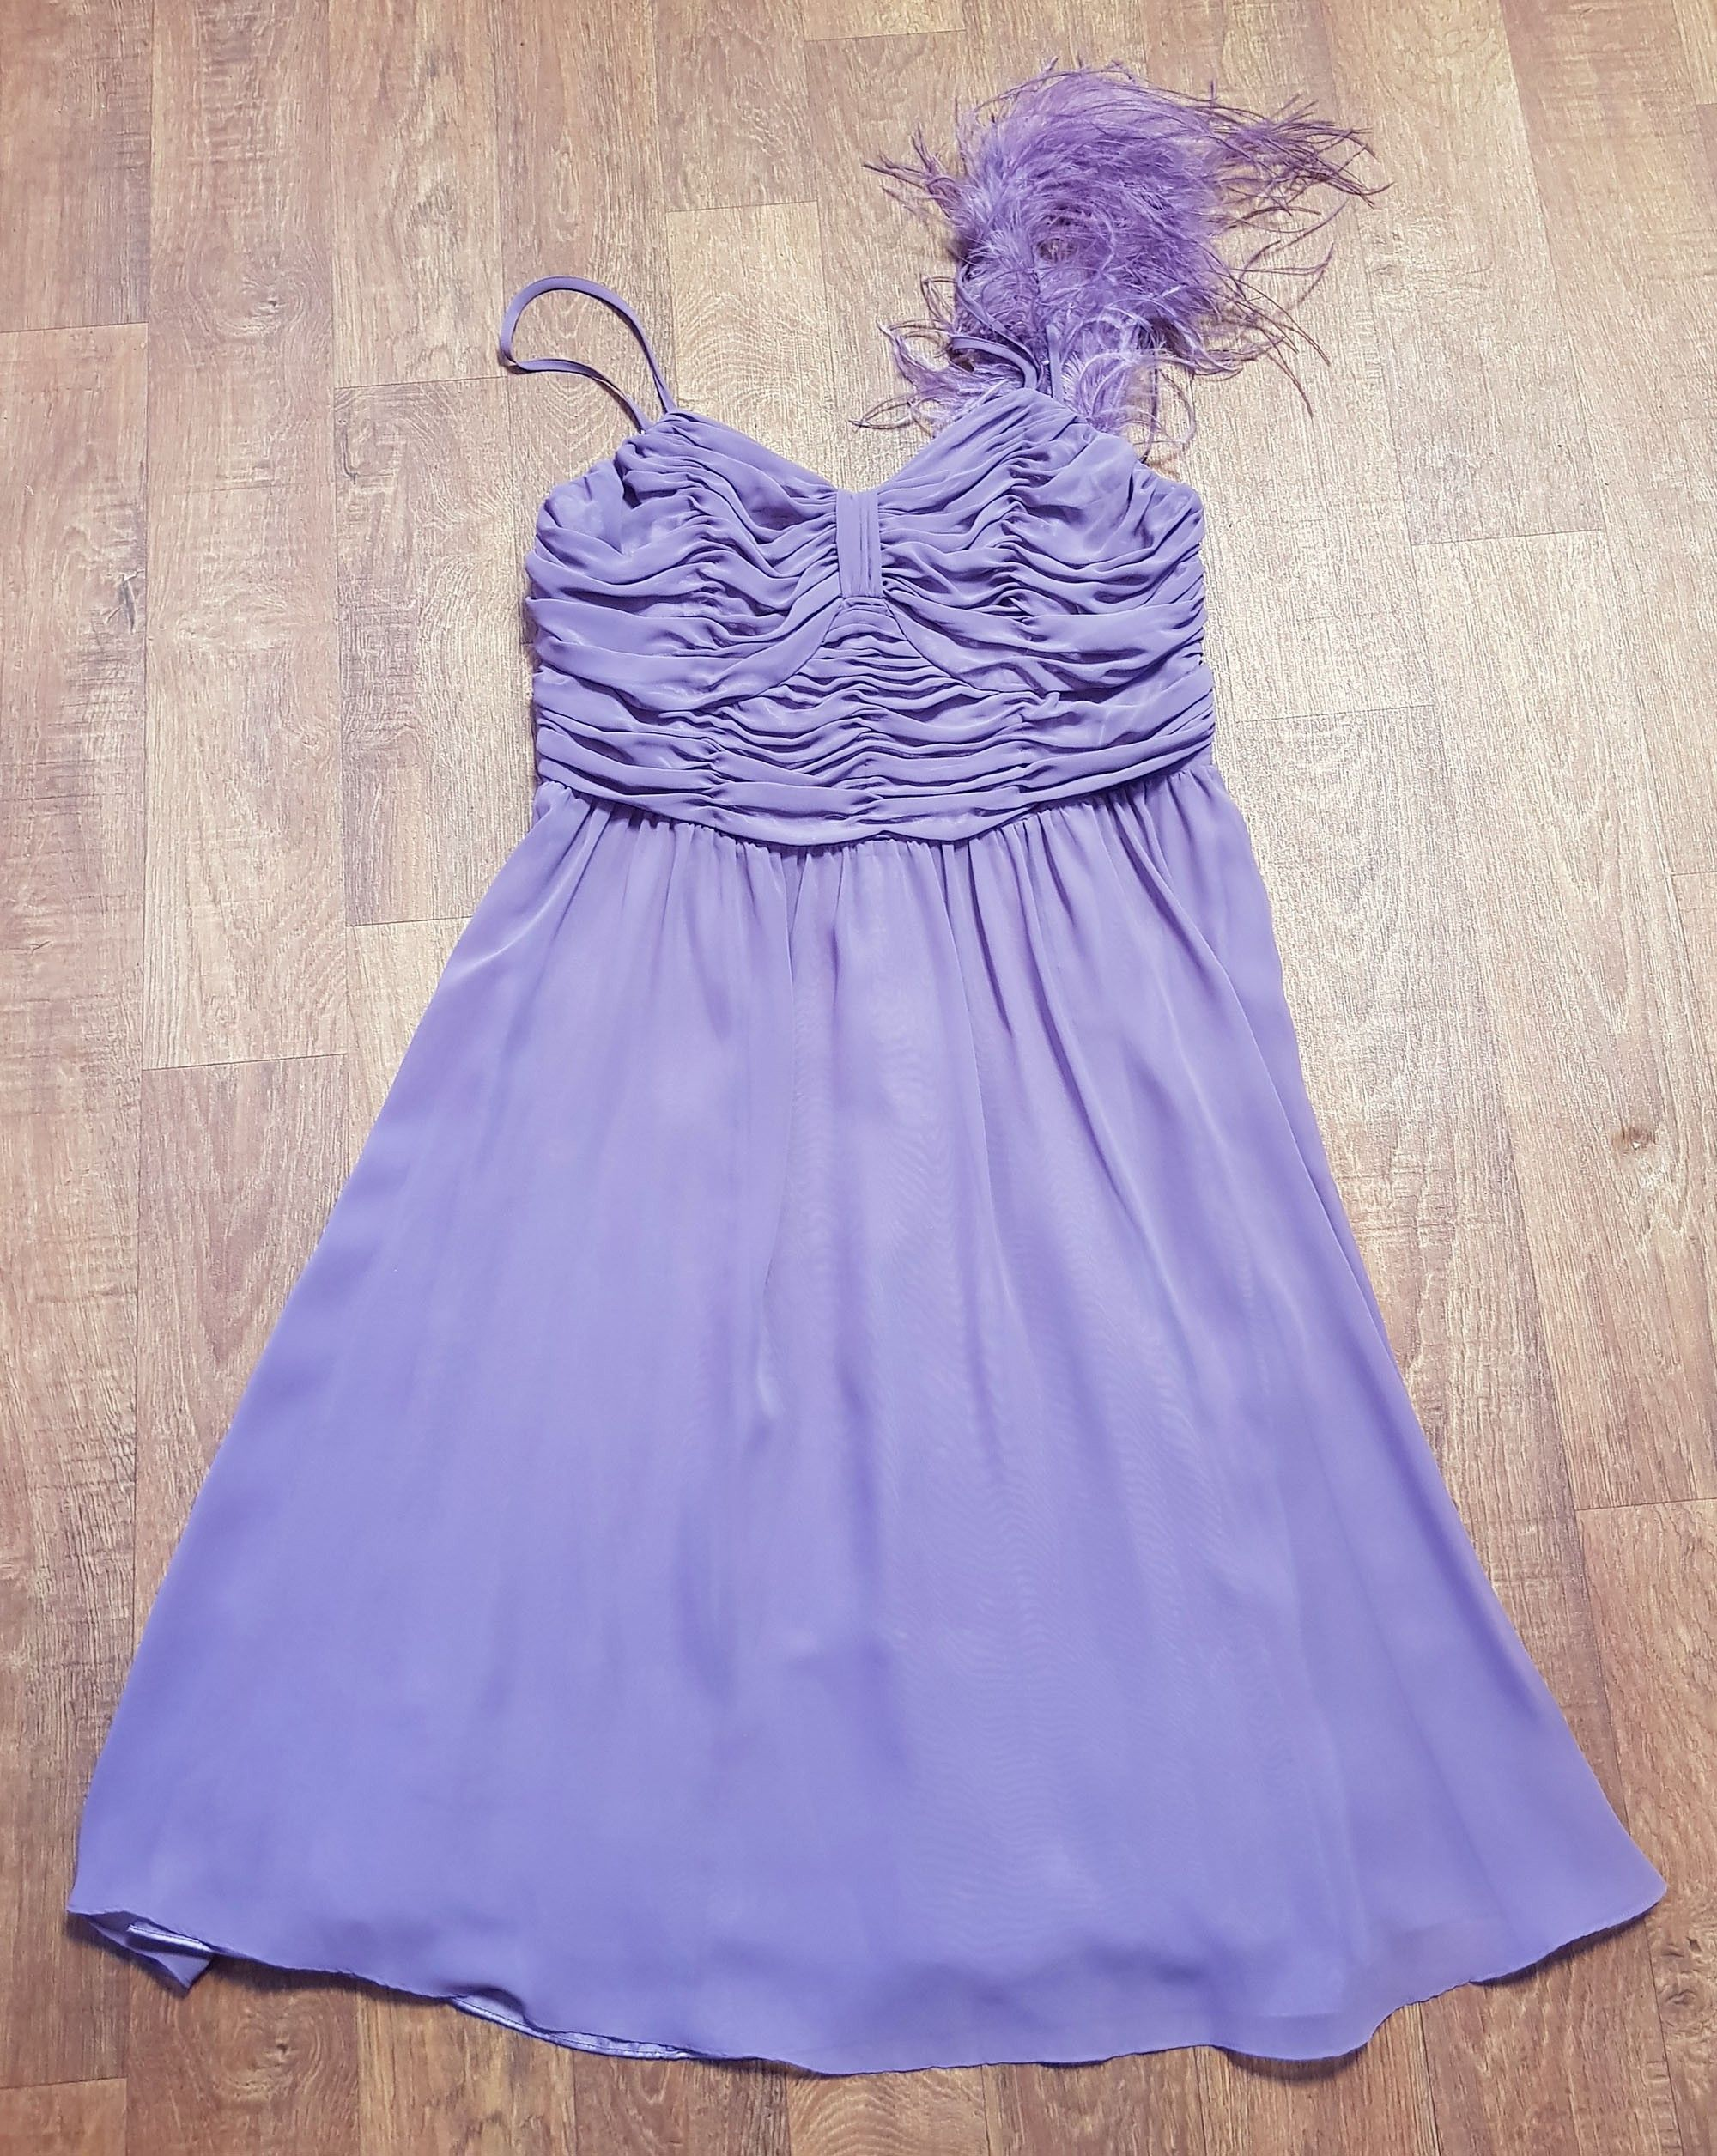 Vintage Mauve Chiffon & Feather Evening/Prom Dress UK Size 12/14